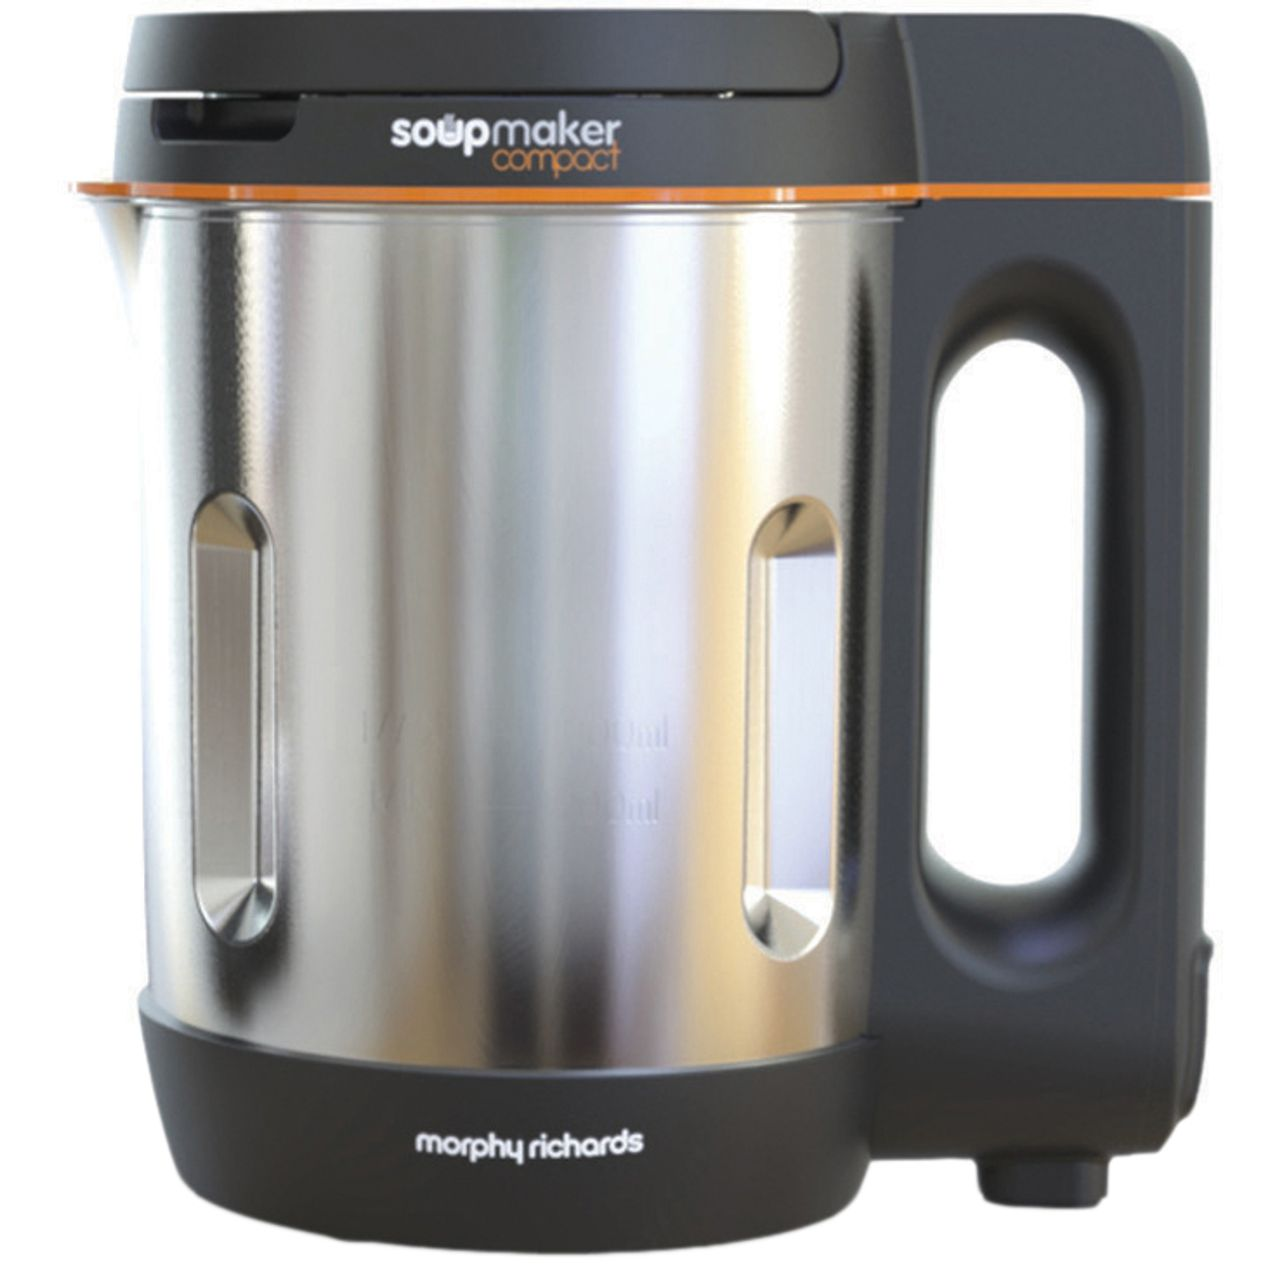 501021 Ss Morphy Richards Soup Maker 1 Litre Ao Com See the back of this instruction book for details (uk and ireland customers only). morphy richards compact 501021 1 litre soup maker stainless steel